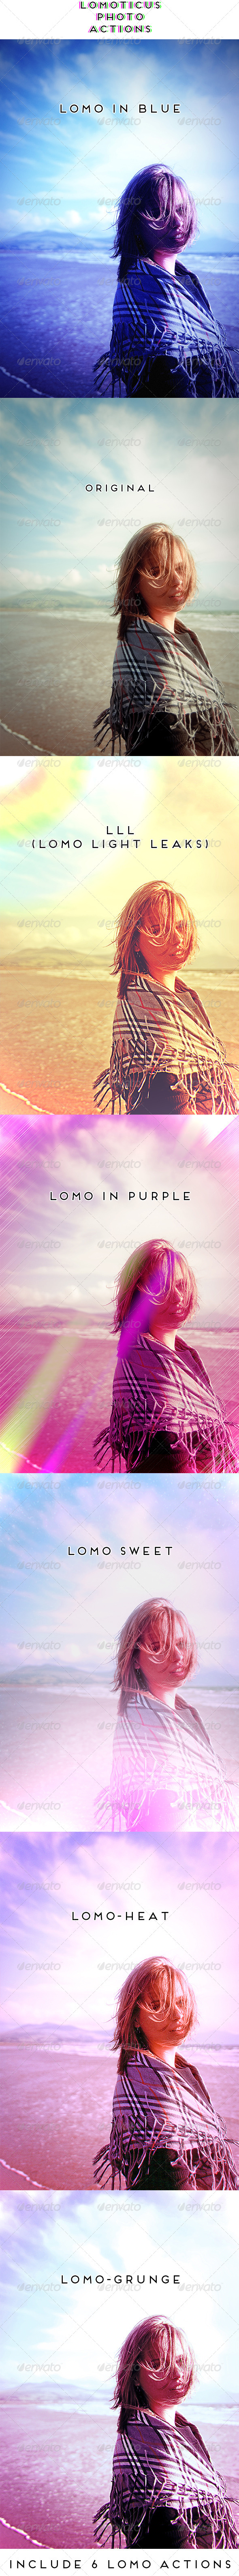 GraphicRiver Lomoticus Photo Actions 5397205